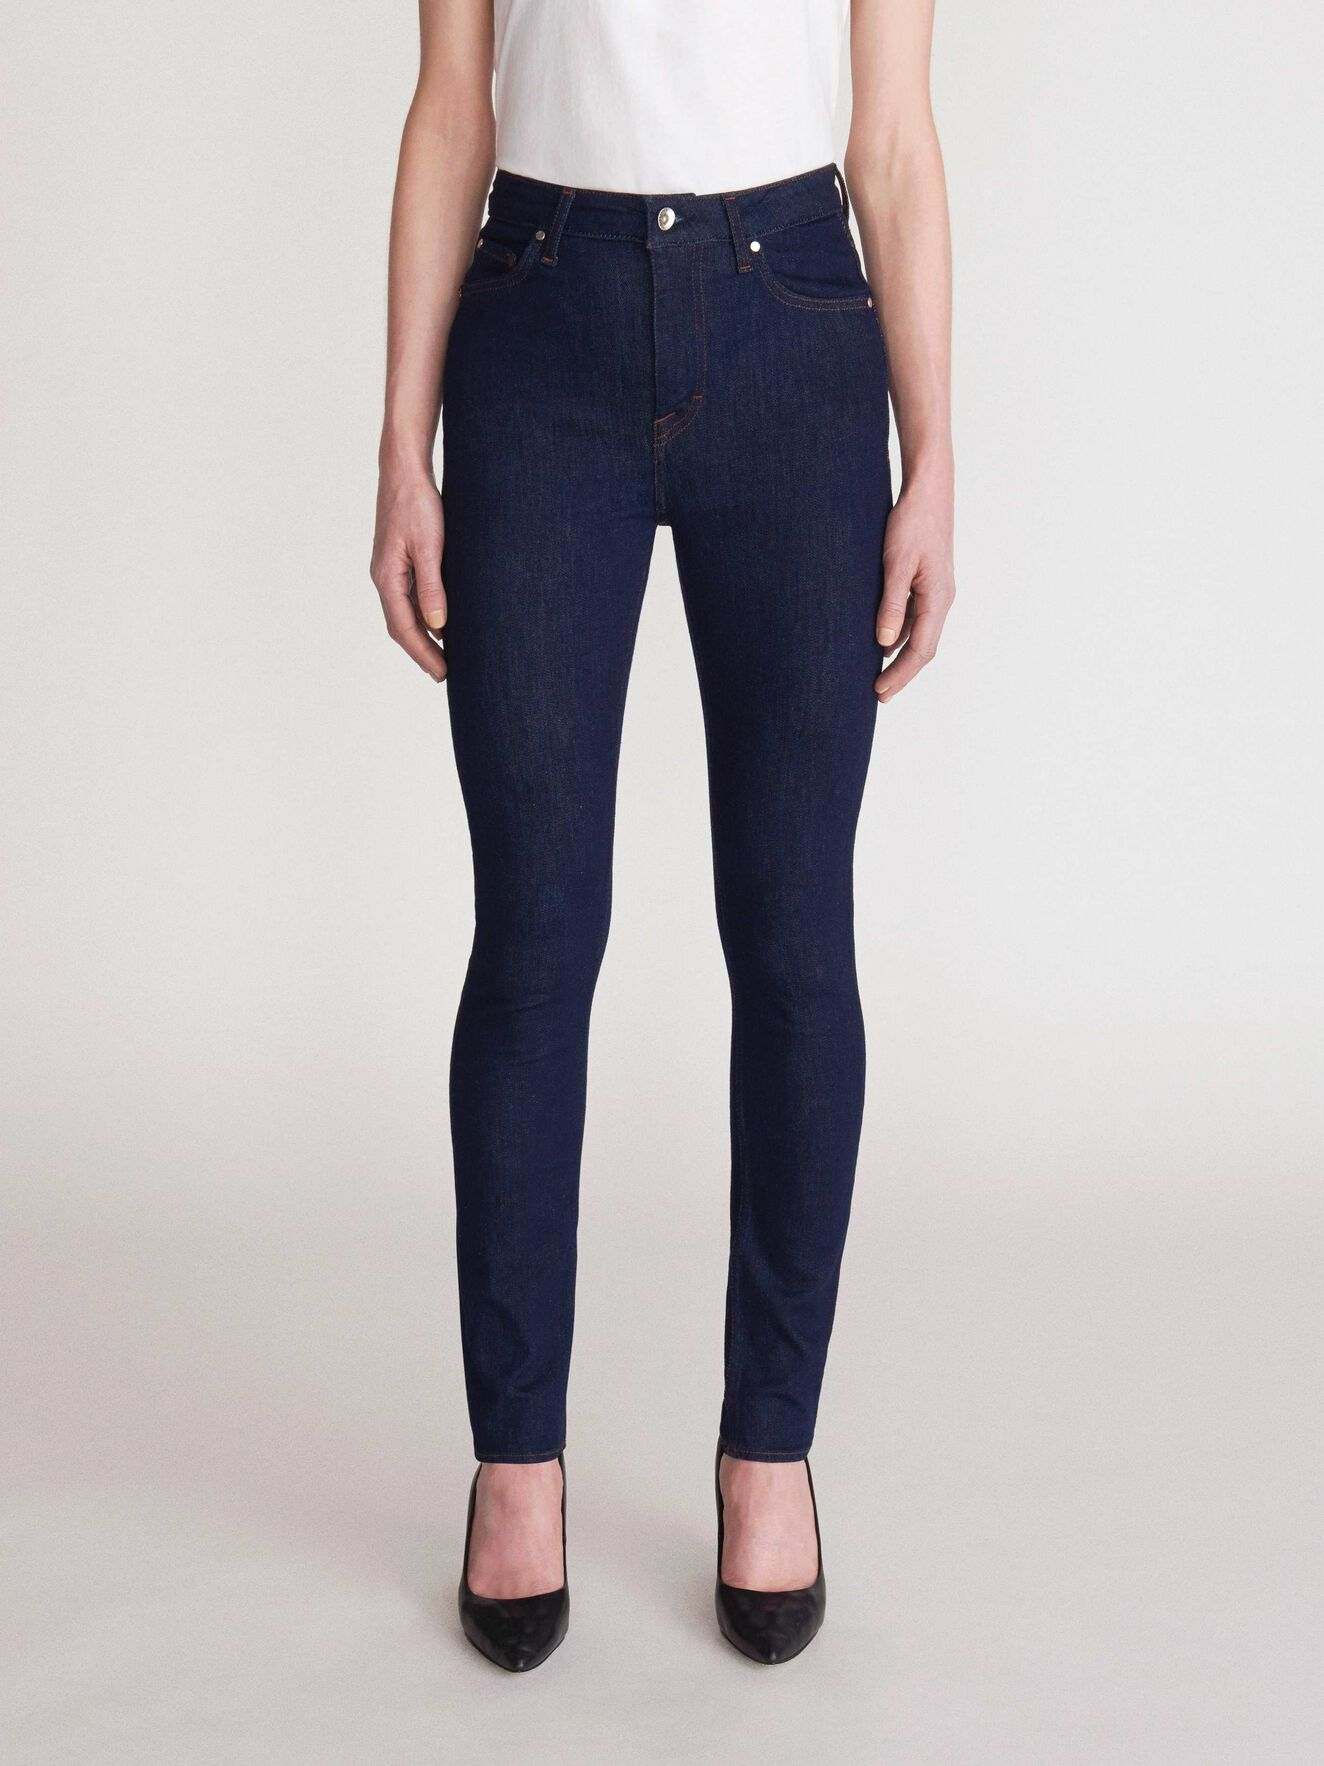 Shelly jeans in Midnight blue from Tiger of Sweden